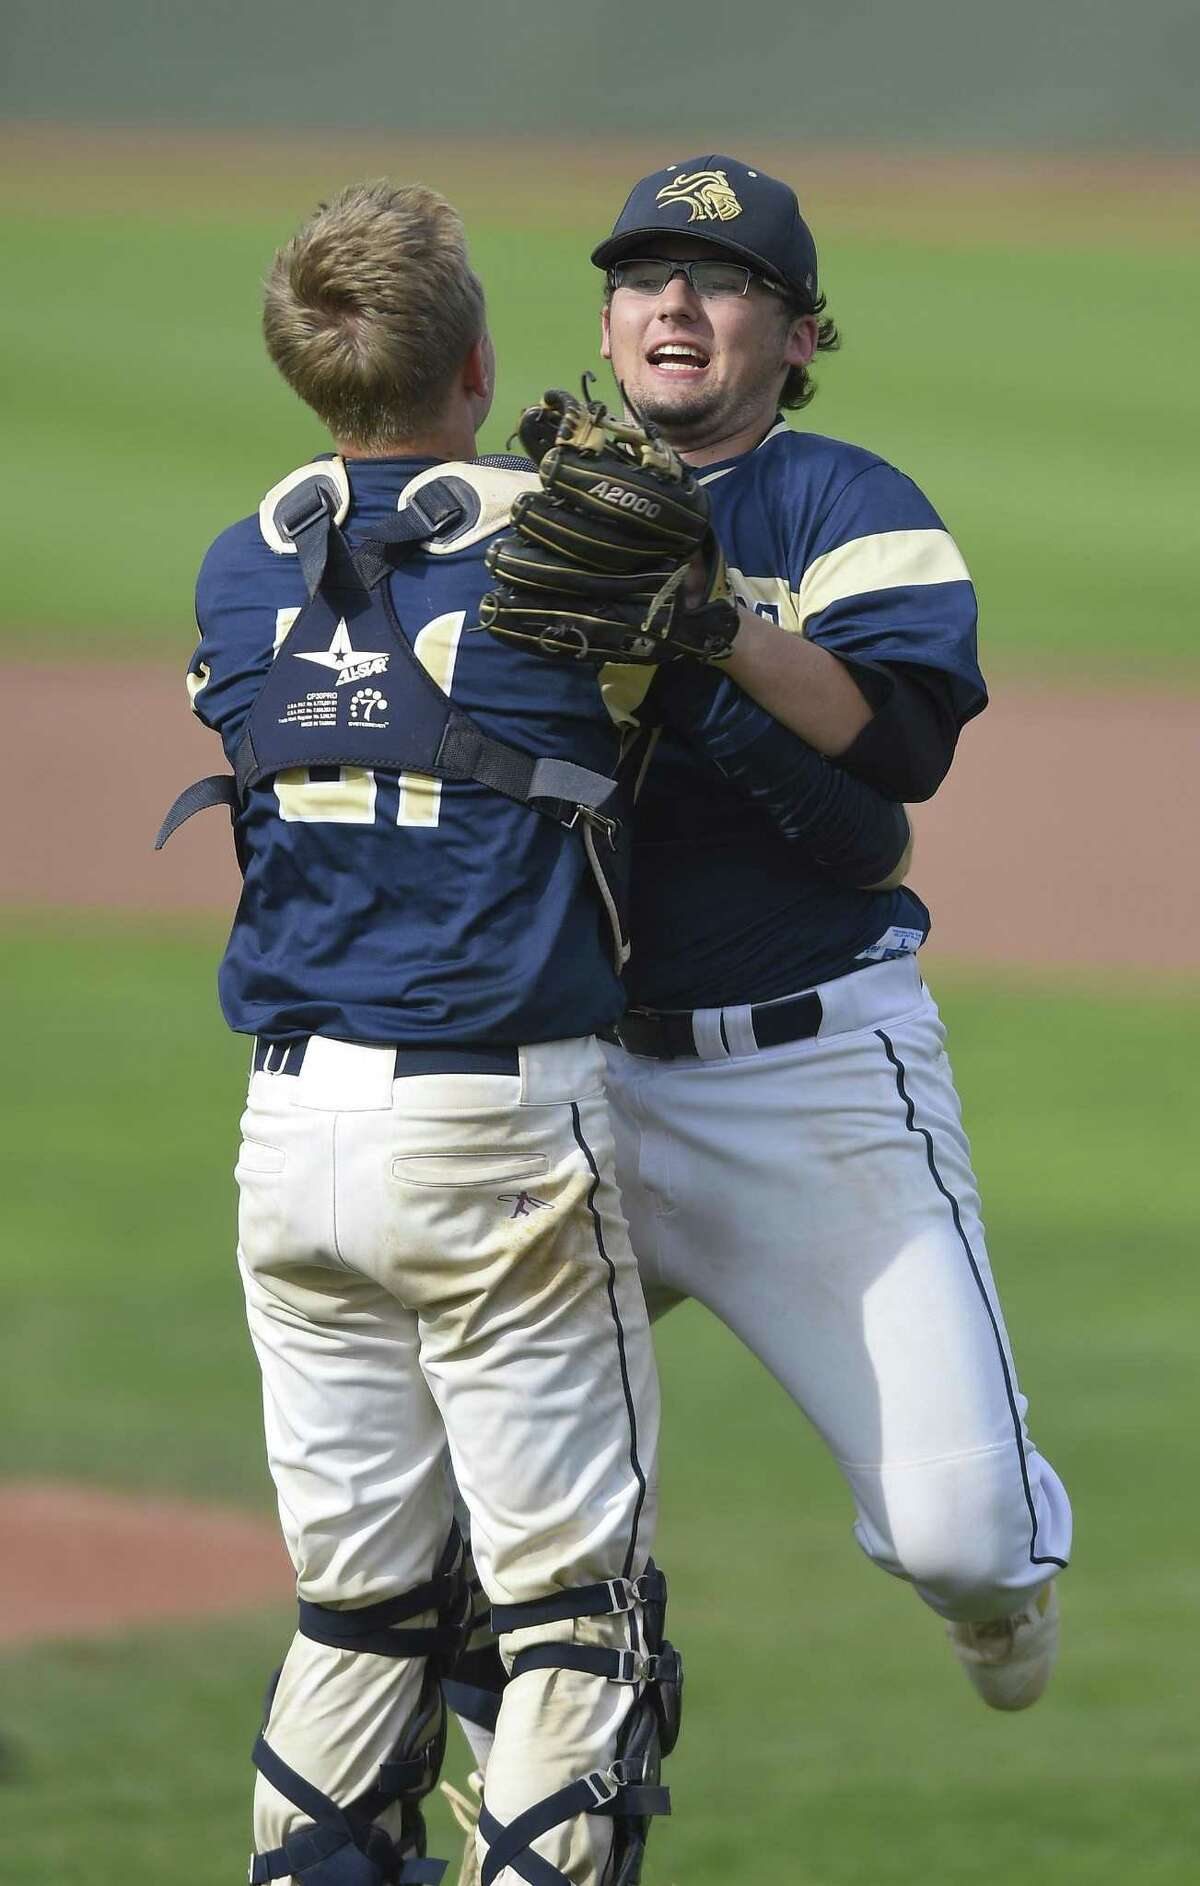 Notre Dame-Fairfield pitcher Dillon Higgins (2) leaps into the arms of catcher Jacob Rainey (21) after delivering the game winning strike out in the seventh inning Coventry's Nik Freschlin (27) in the CIAC Class S baseball finals at Palmer Field Stadium on June 9, 2018 in Middletown, Connecticut. Notre Dame-Fairfielde defeated Coventry 10-6.